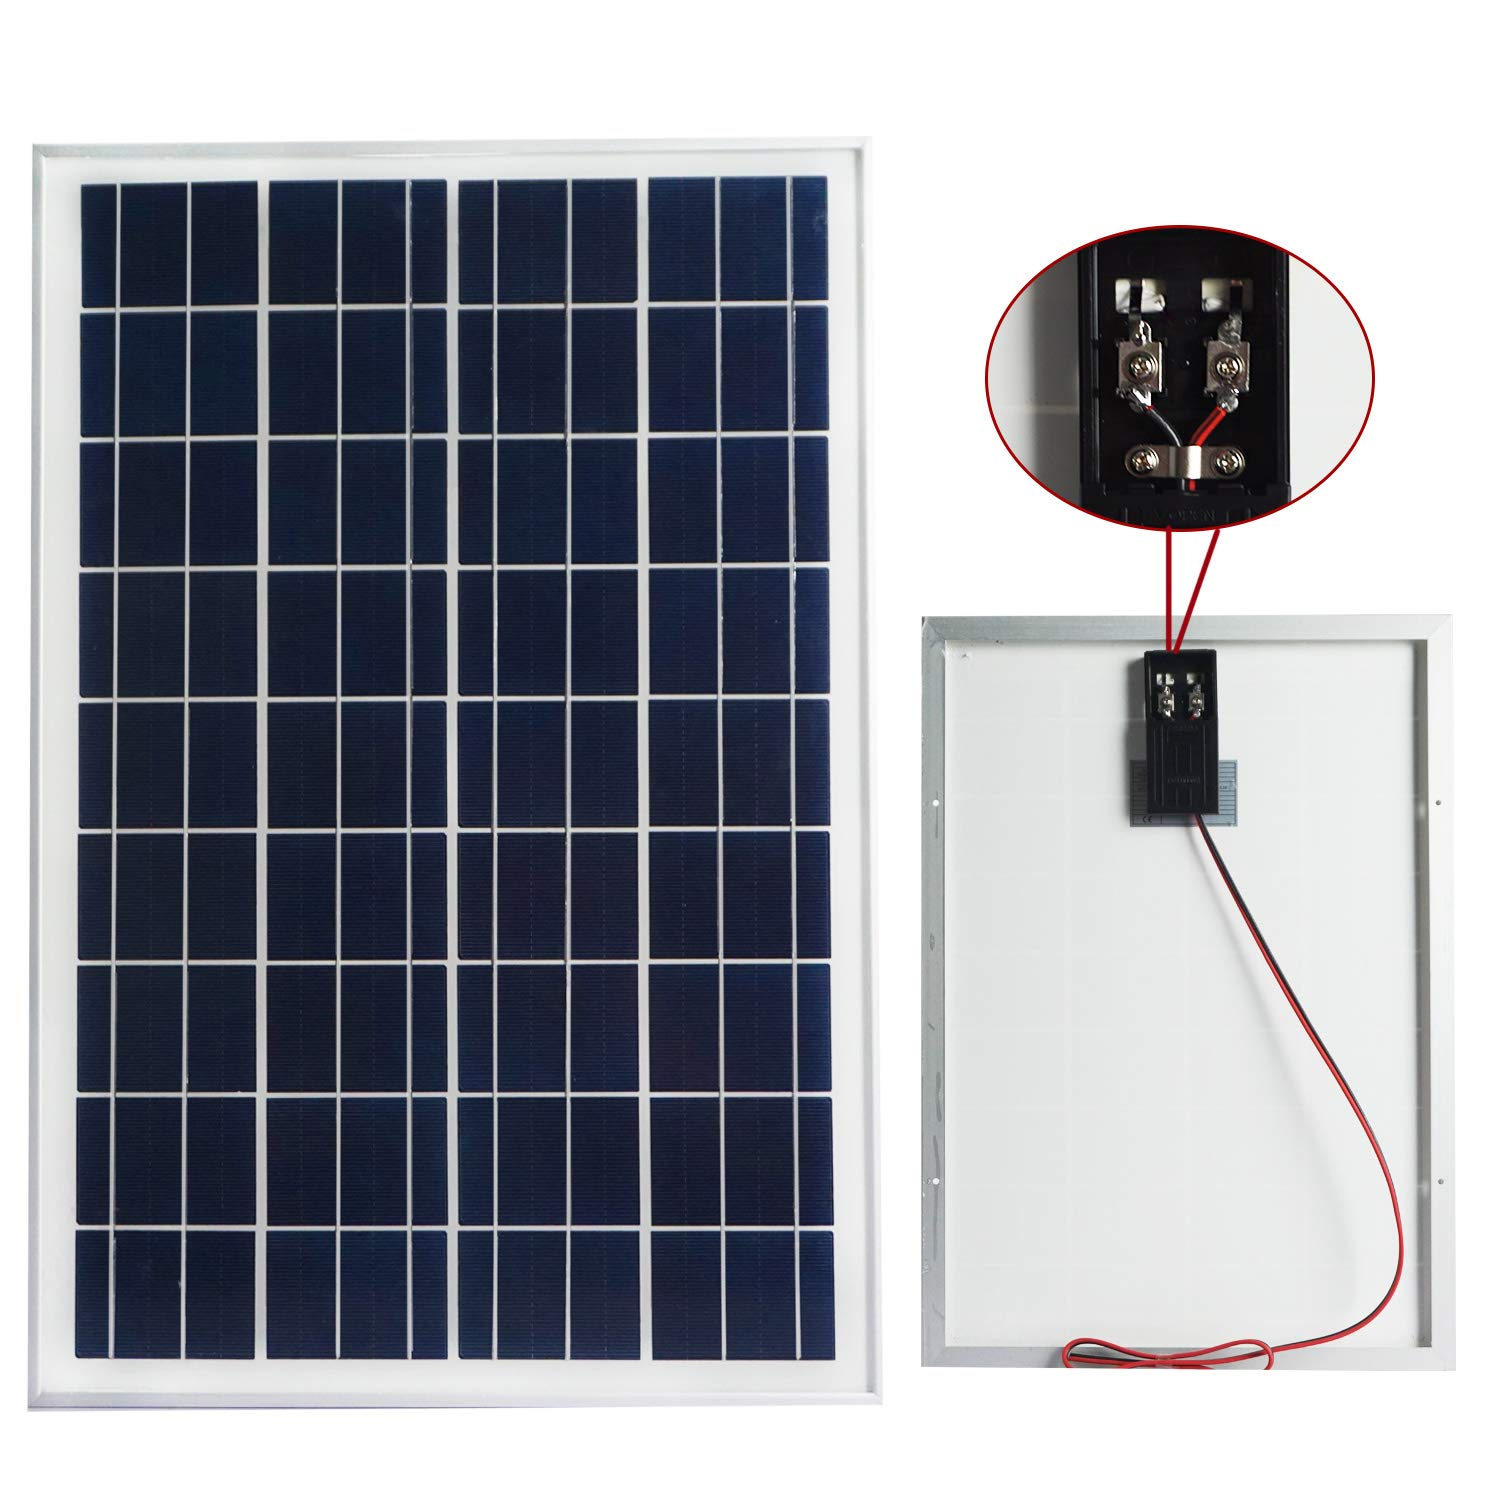 Power Chargers And Inverters All Go Together Kedron Wiring Anderson 20w 12v Solar Panel Kit 20 Watt Polycrystalline Battery Clips 3a Charge Controller Sports Fitness Outdoors